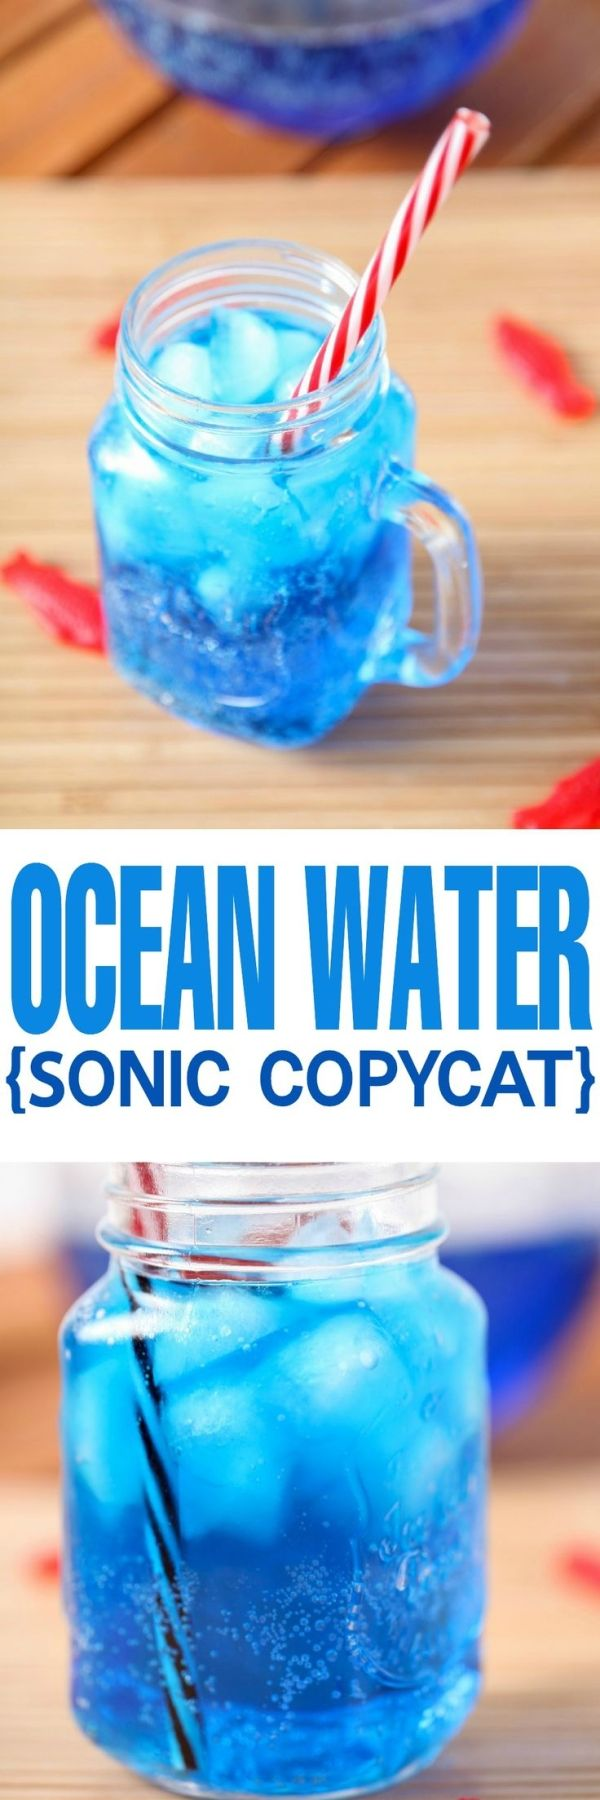 Copycat Sonic Ocean Water Recipe: The most gorgeous and refreshing summer drink around! The perfect non alcoholic drink for picnics or the Fourth of July. by nell